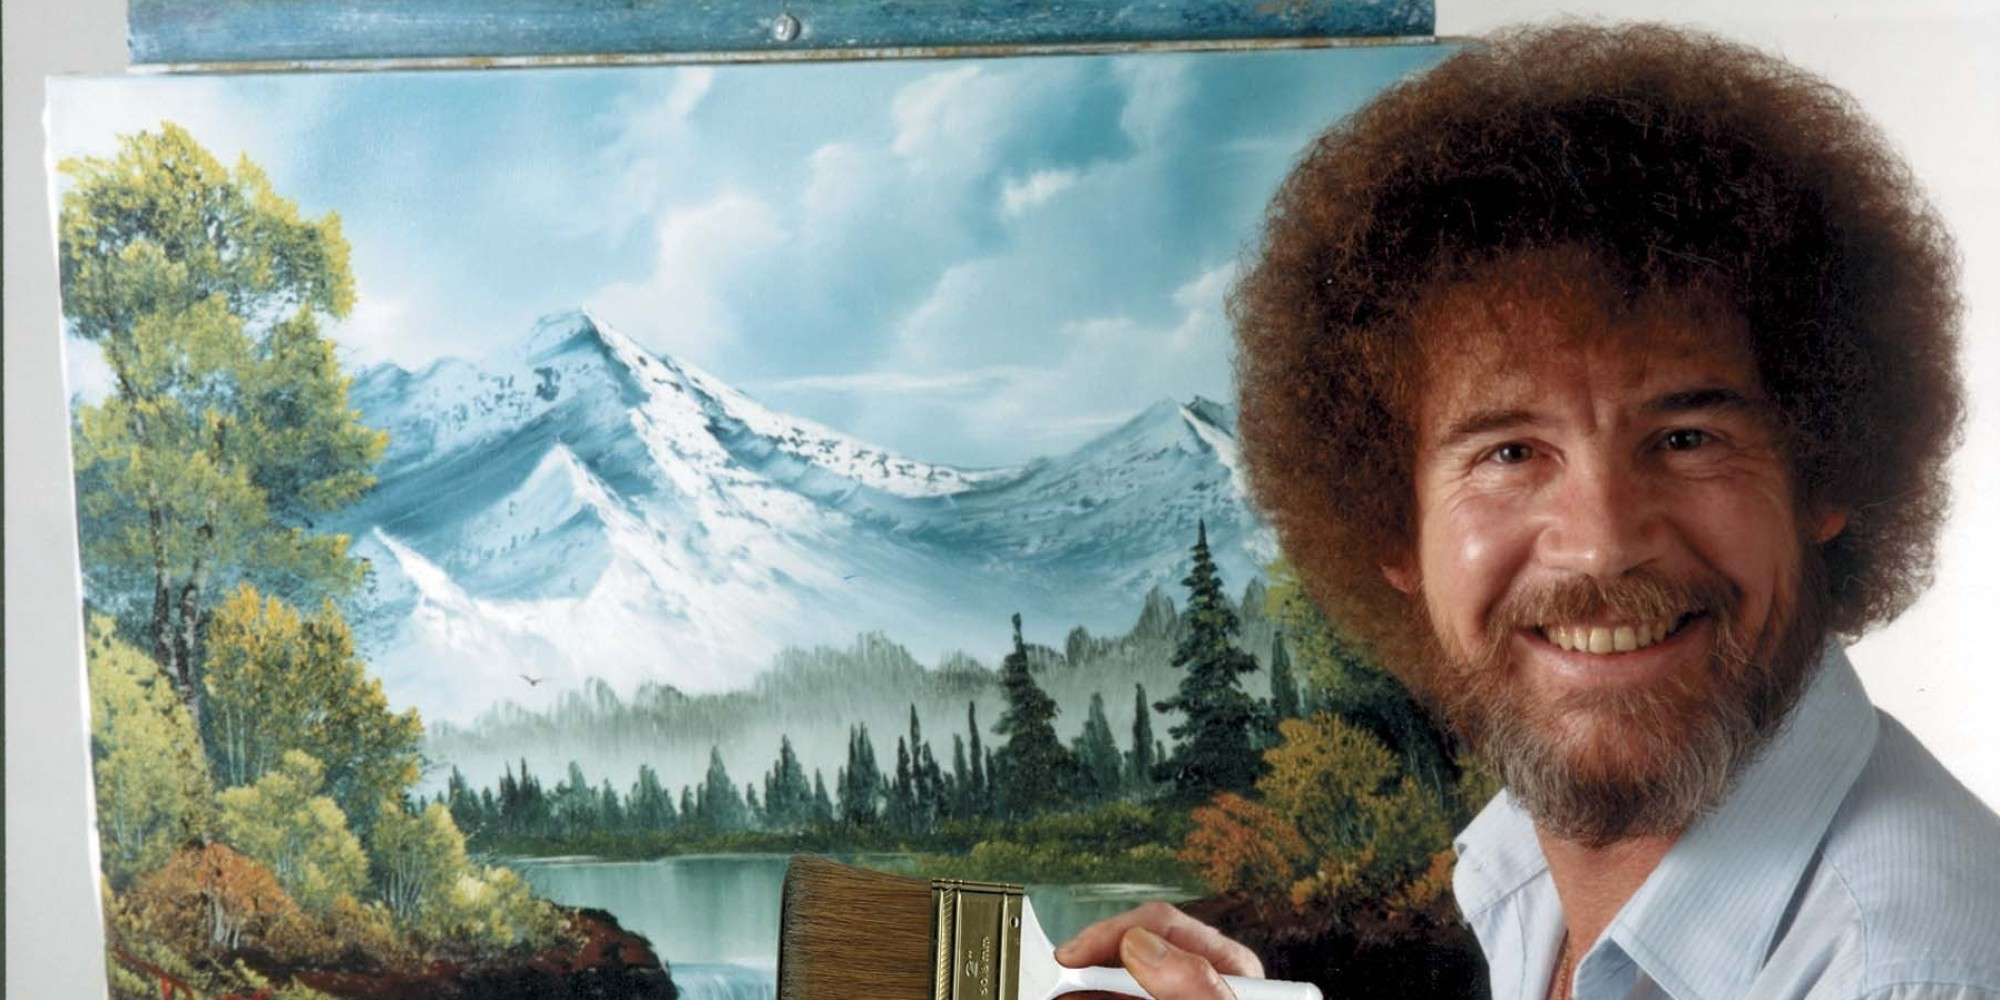 The Bob Ross Experience, a New Interactive Museum, Is Open in Indiana. Can It Calm a Nervous Nation?